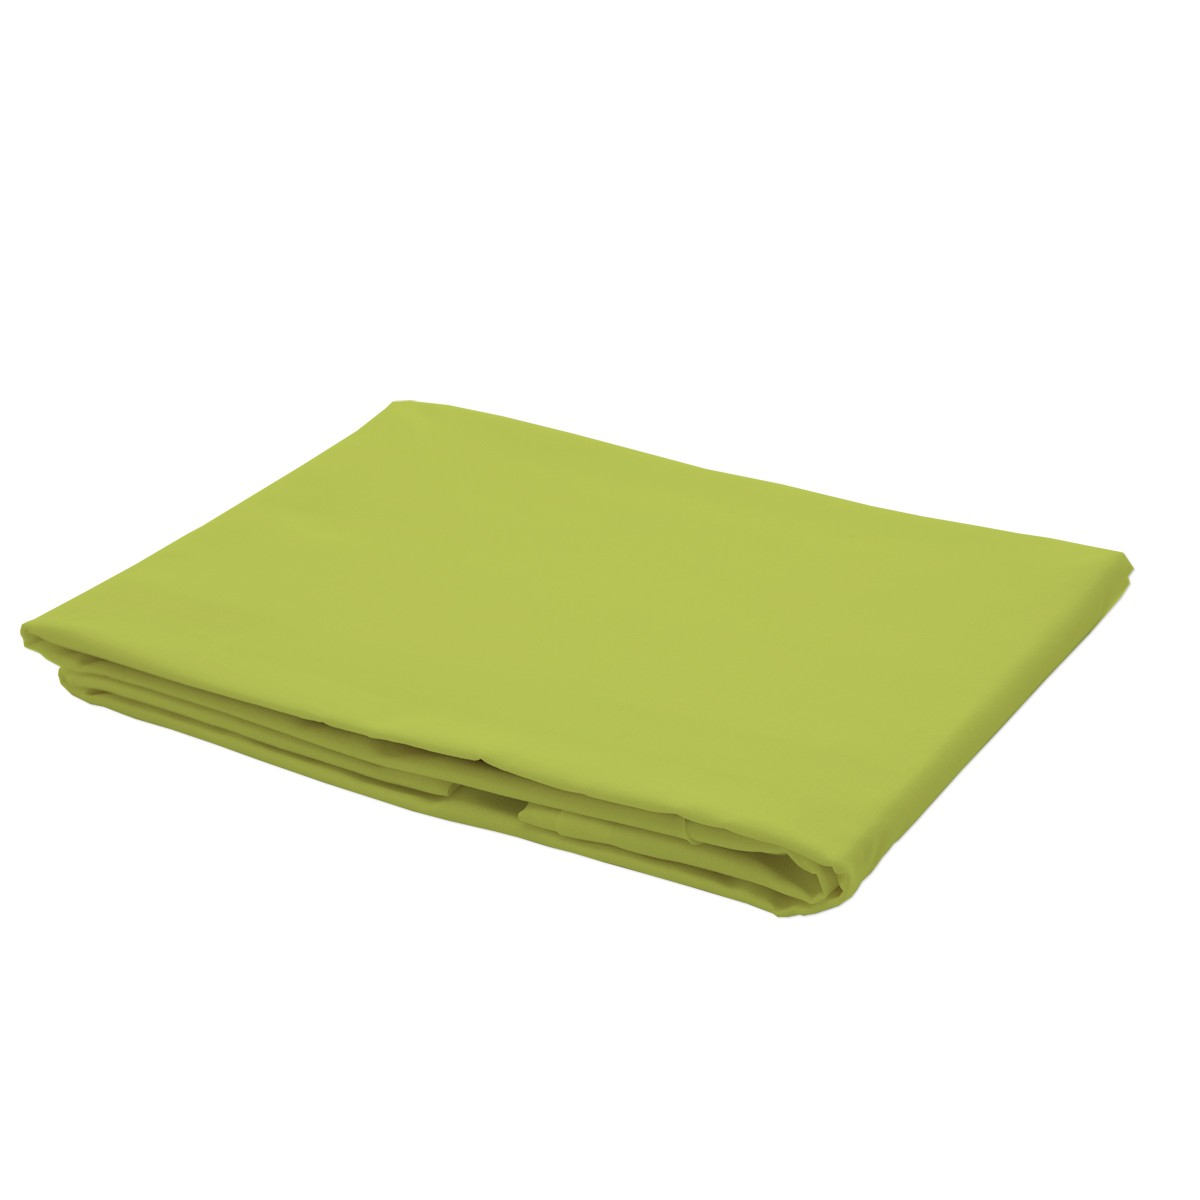 Green Flat Sheet 100 Cotton Bedding Soulbedroom